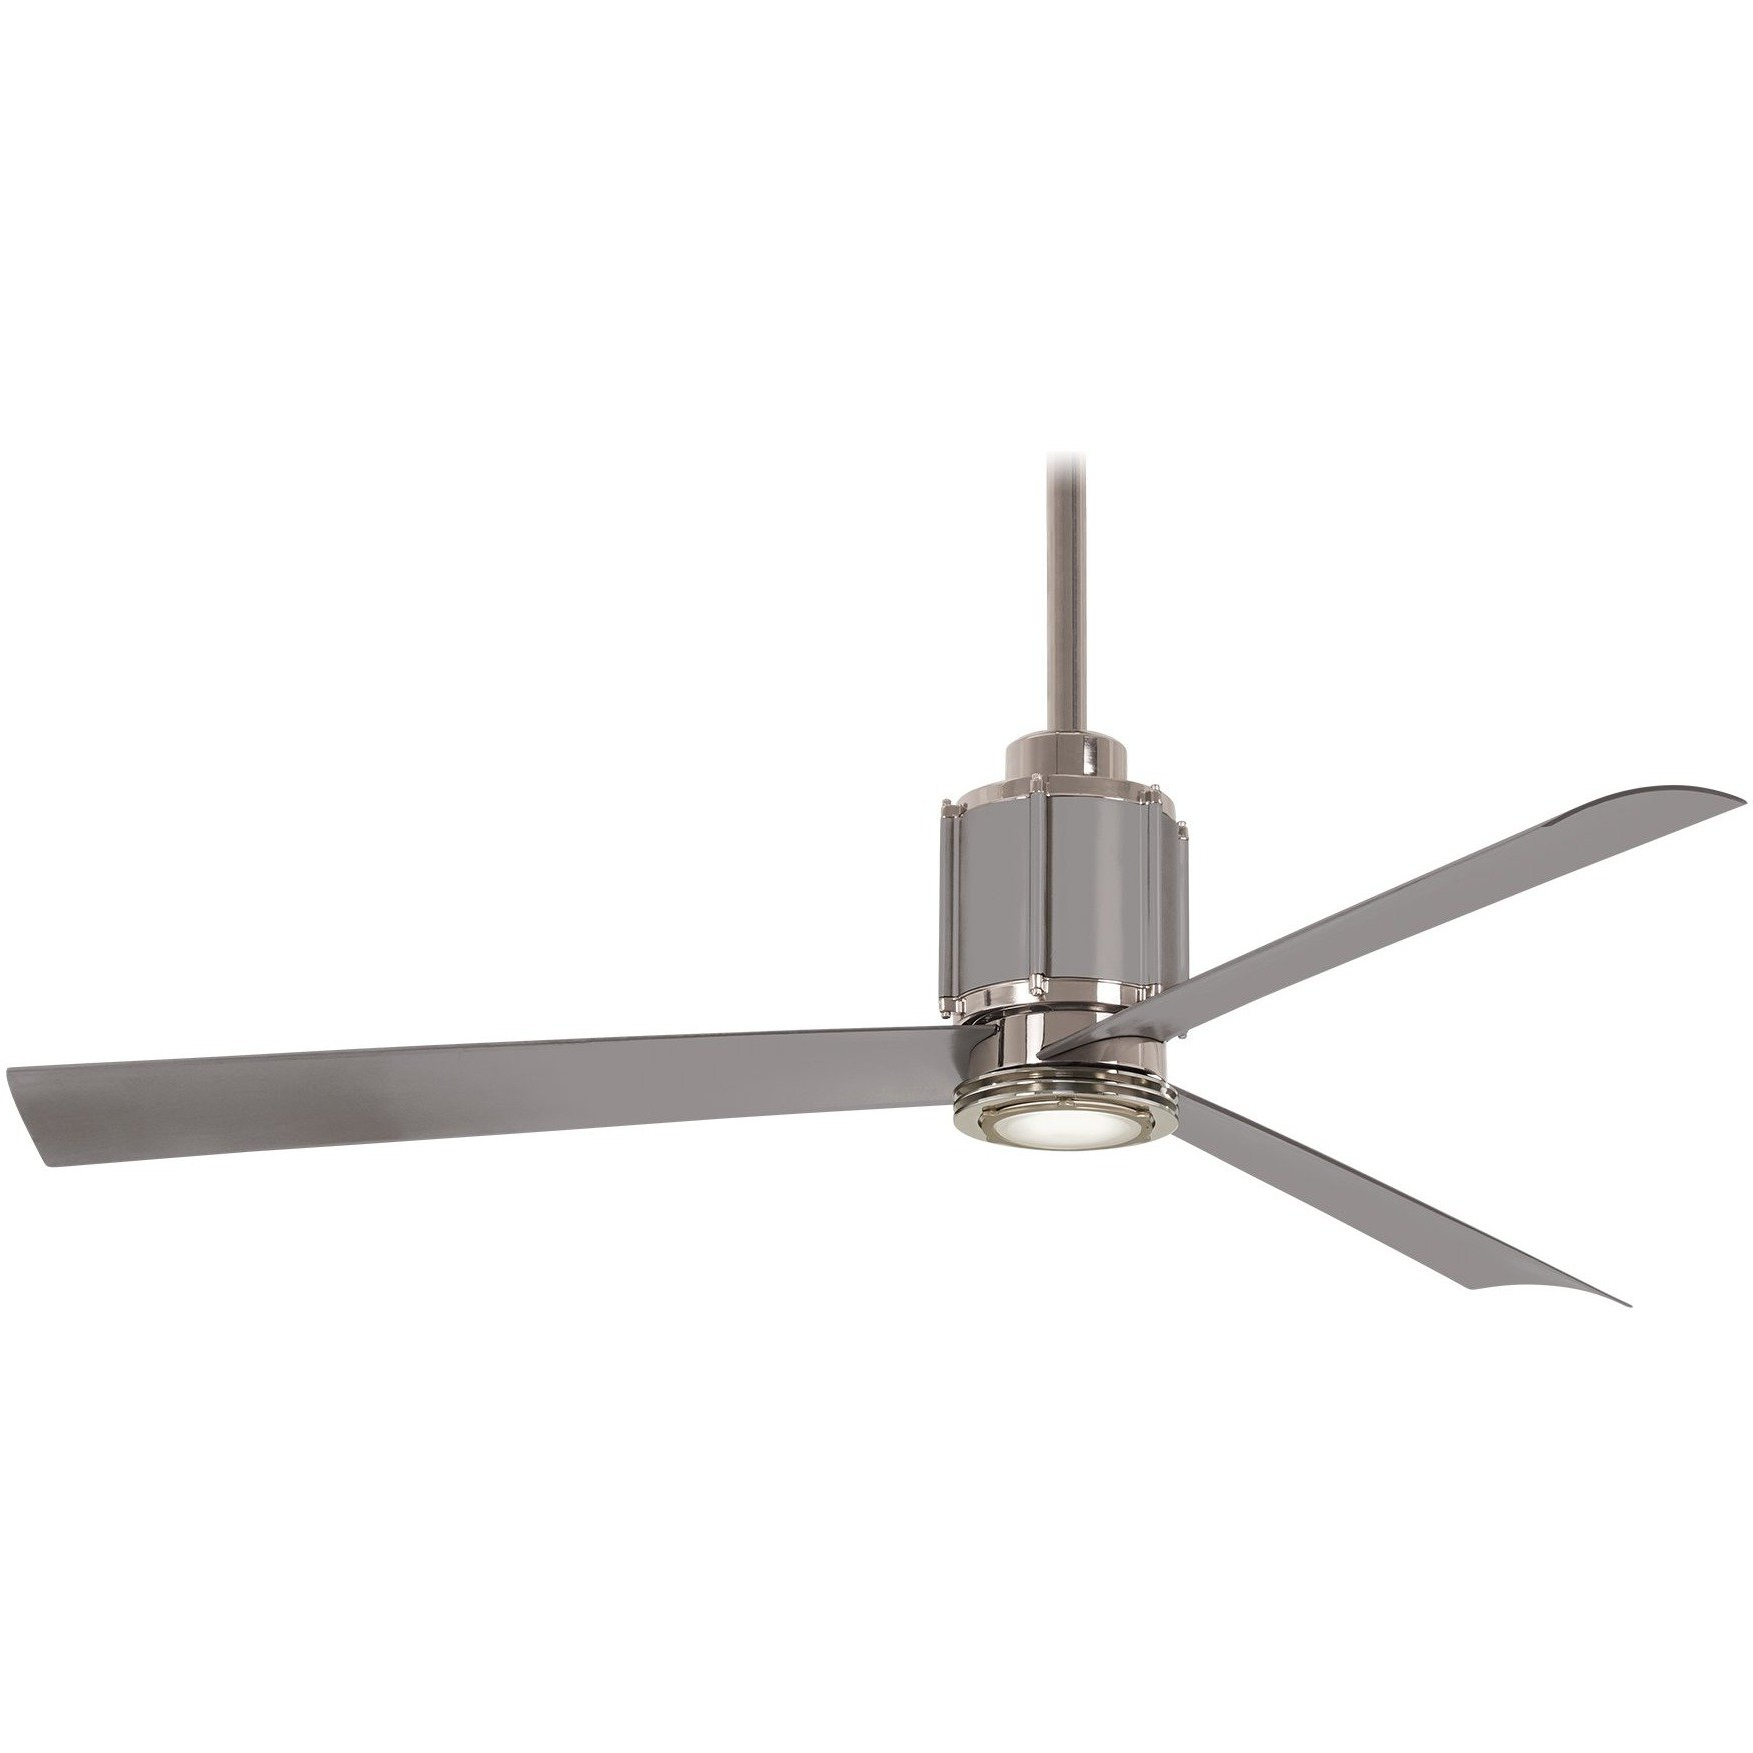 Popular Minka Aire F736l Pn/bs Gear Polished Nickel/brushed Steel 54 Within Theron Catoe 3 Blade Ceiling Fans (View 17 of 20)